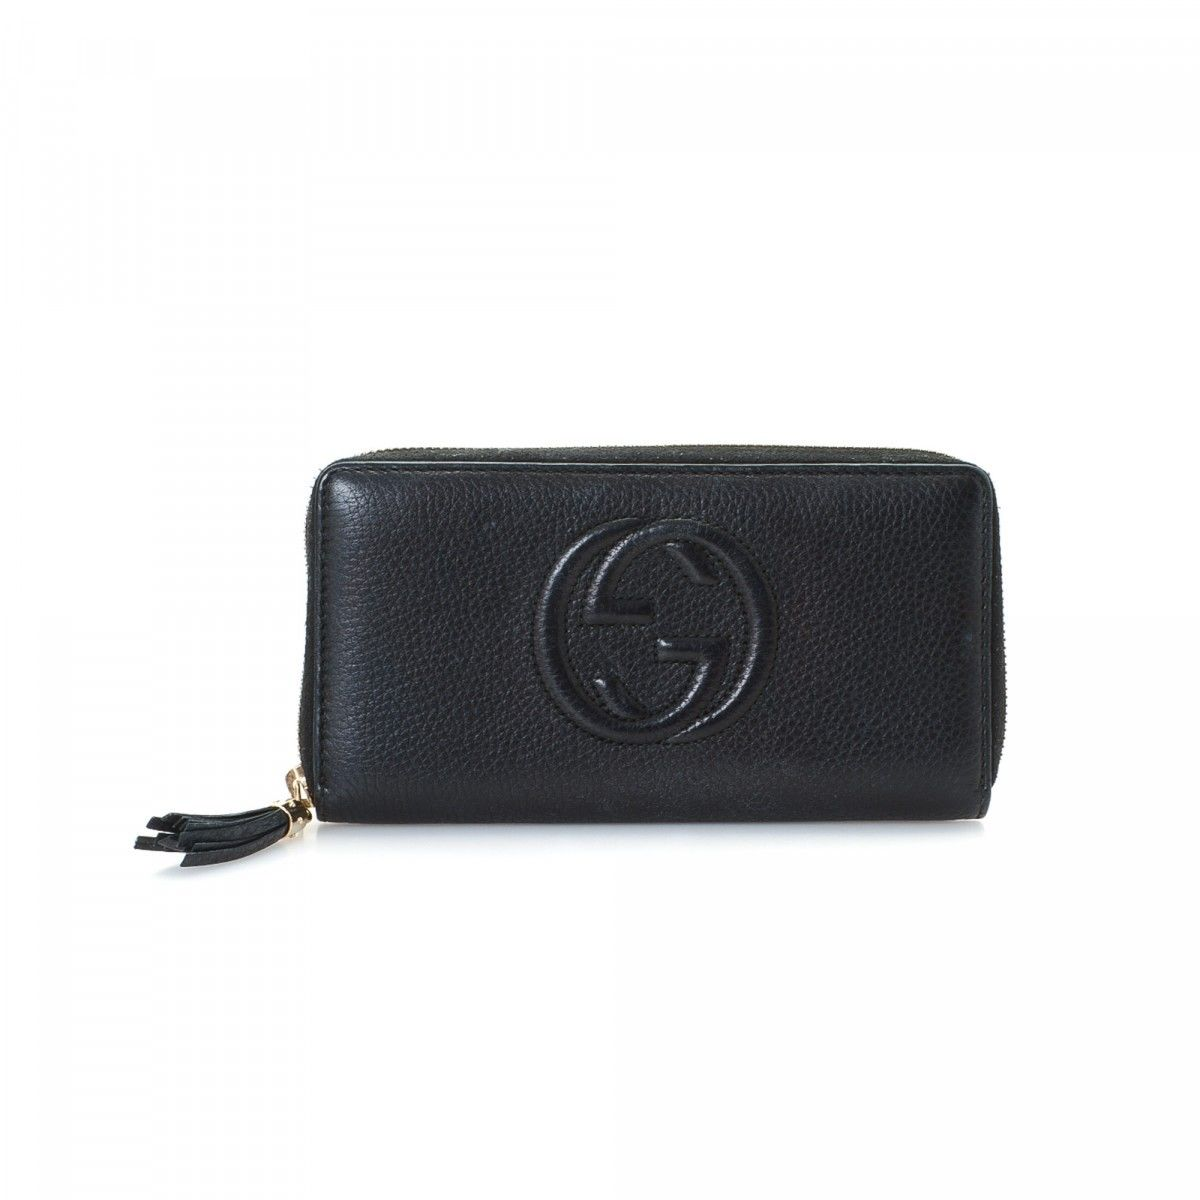 00c206a007d Gucci Soho Wallet Soho Leather - LXRandCo - Pre-Owned Luxury Vintage